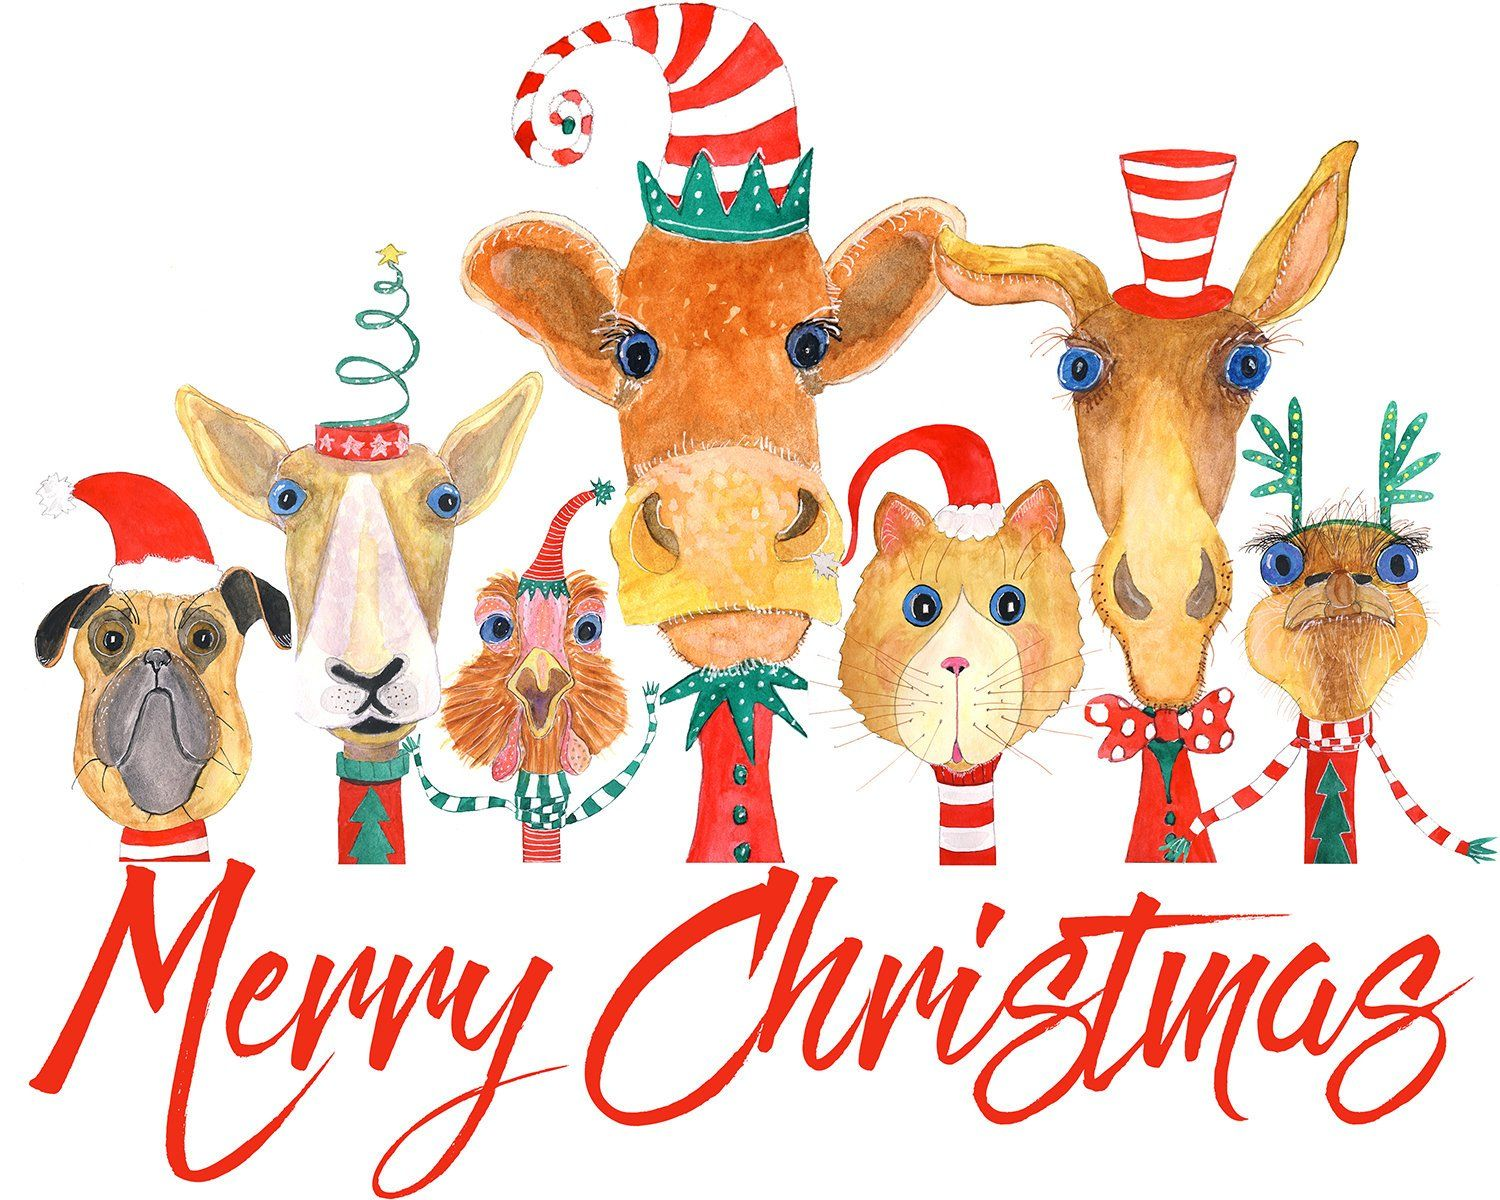 Merry Christmas Animals.Illustrated Merry Christmas Animal Card Whimsical Animals In Santa